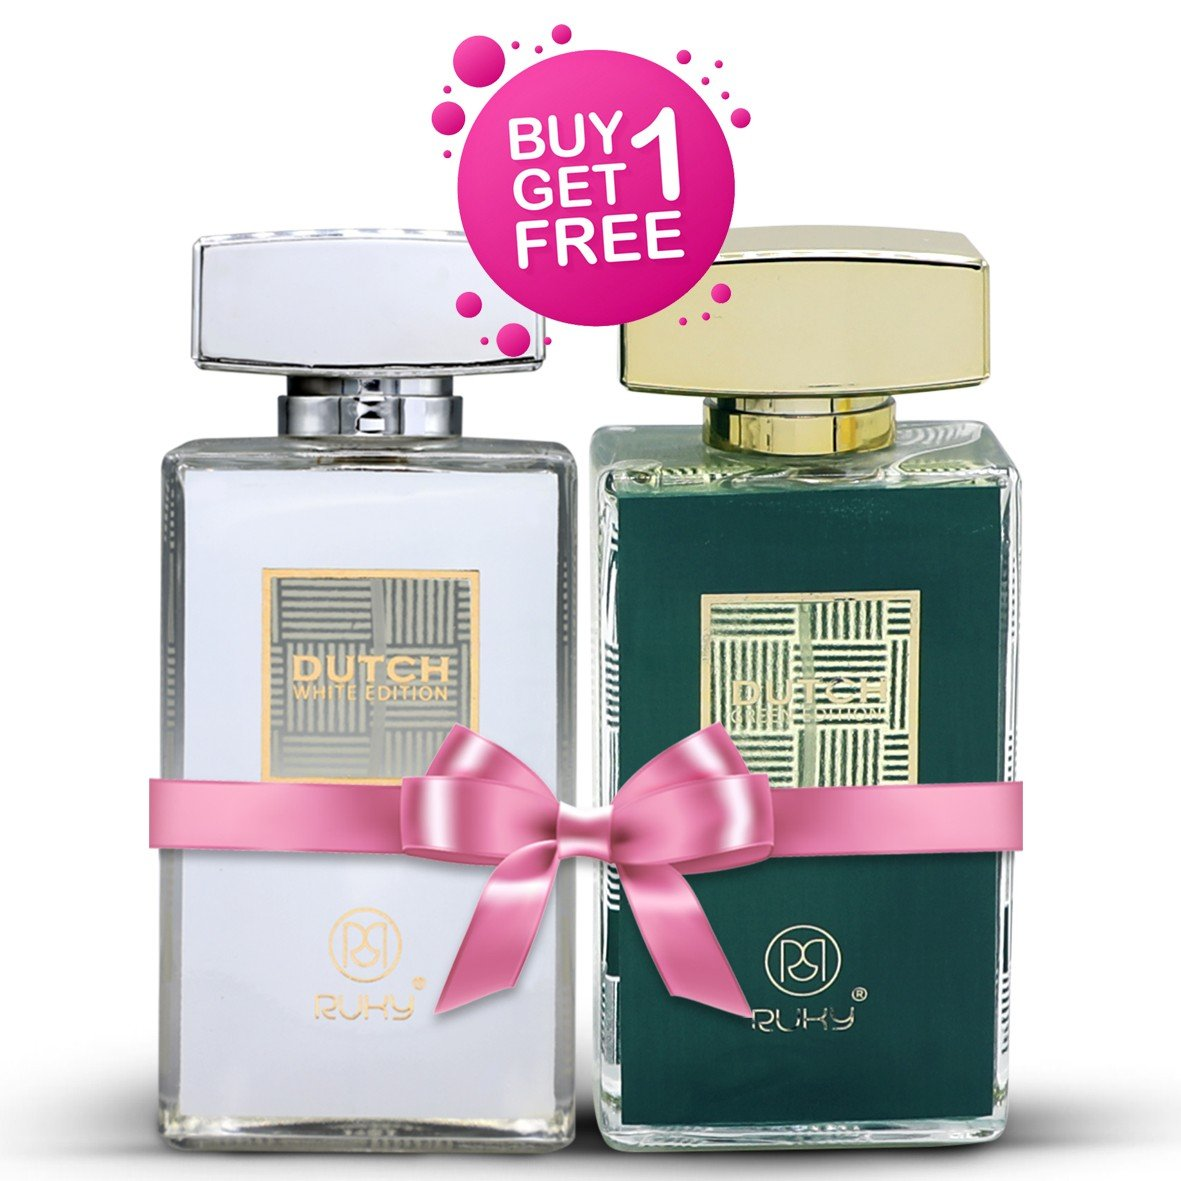 Ruky Perfumes Buy 1 Get 1 Eid Offer, Buy Dutch Green and Get Dutch White